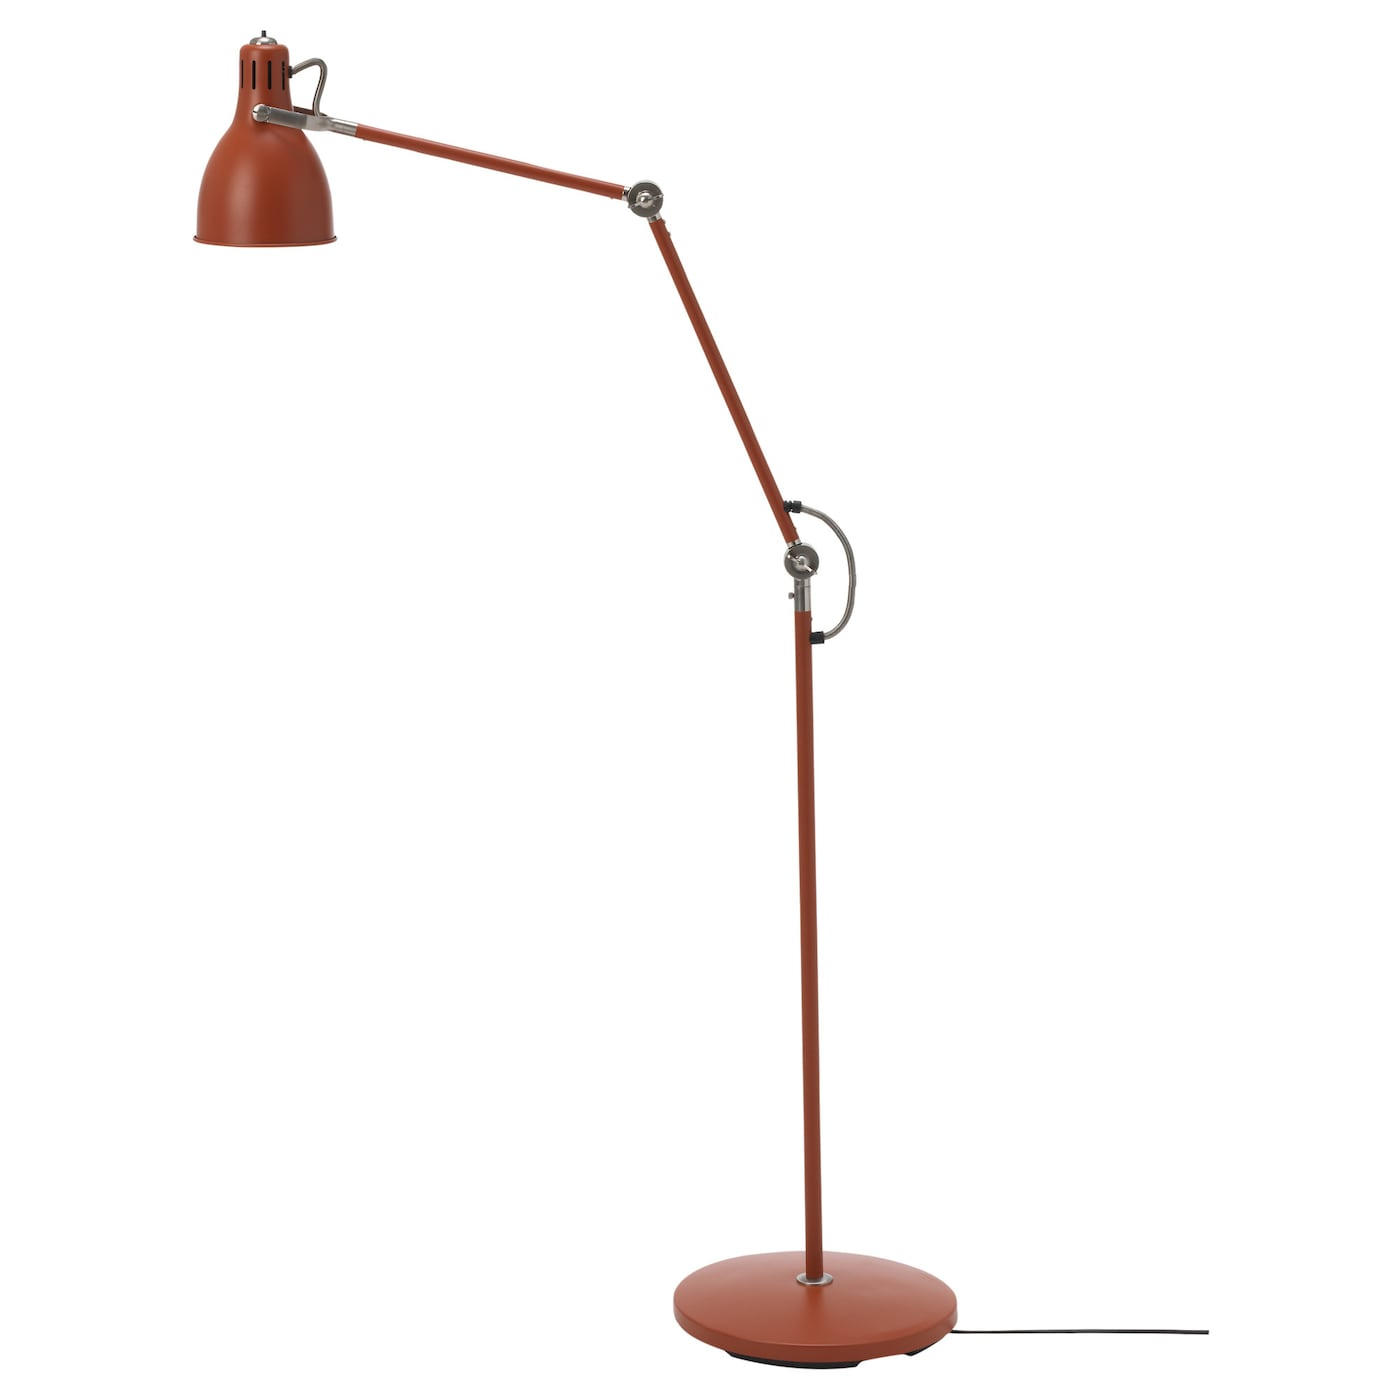 klabb floor lamp ikea. IKEA ARÖD Floor/reading Lamp Provides A Directed Light That Is Great For Reading. Klabb Floor Ikea U